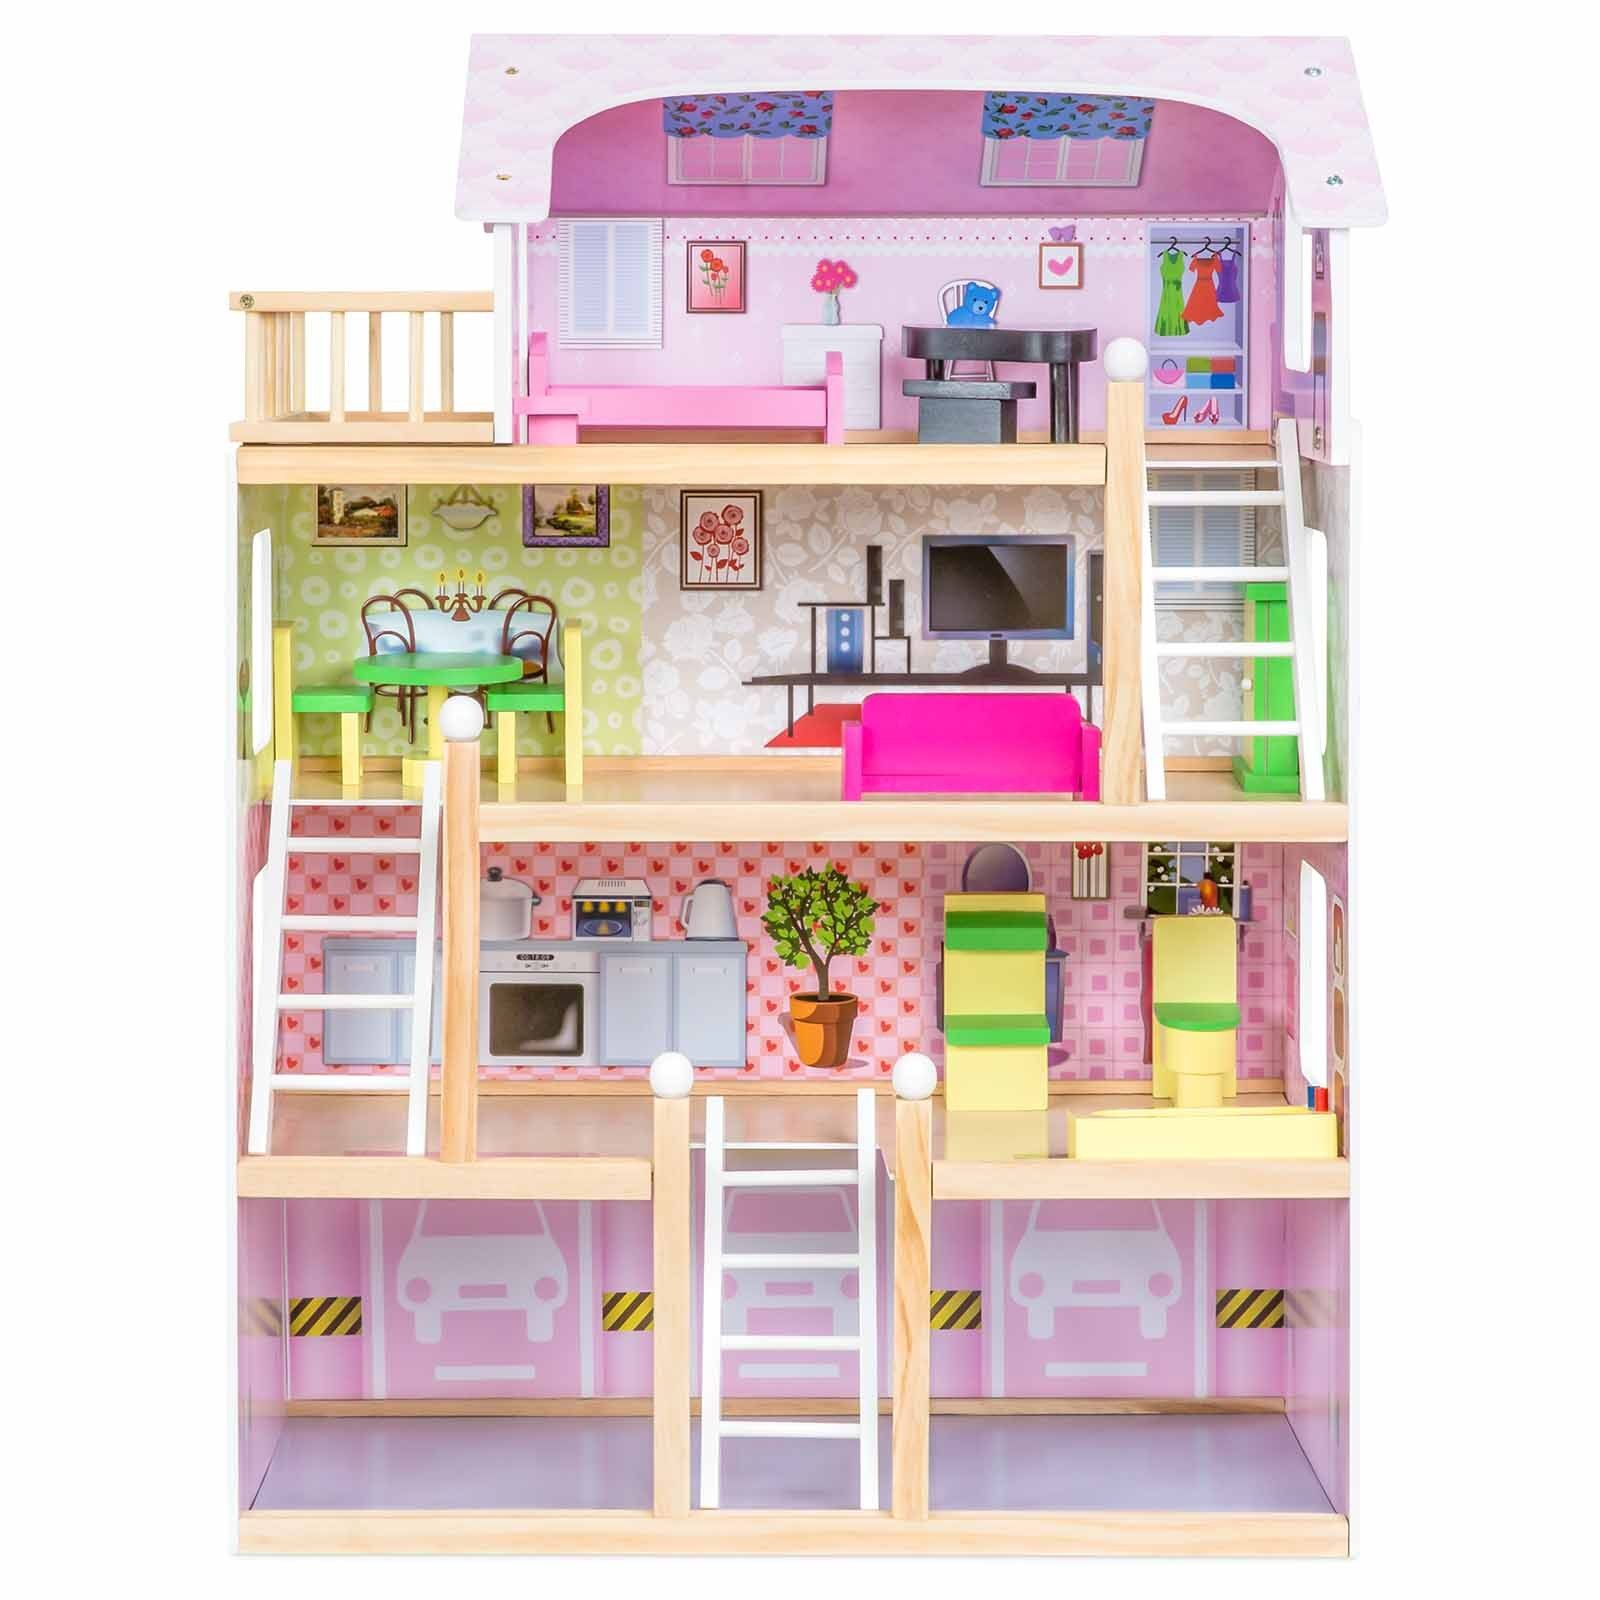 Kupit Barbie Dream House Size Dollhouse Furniture Girls Playhouse